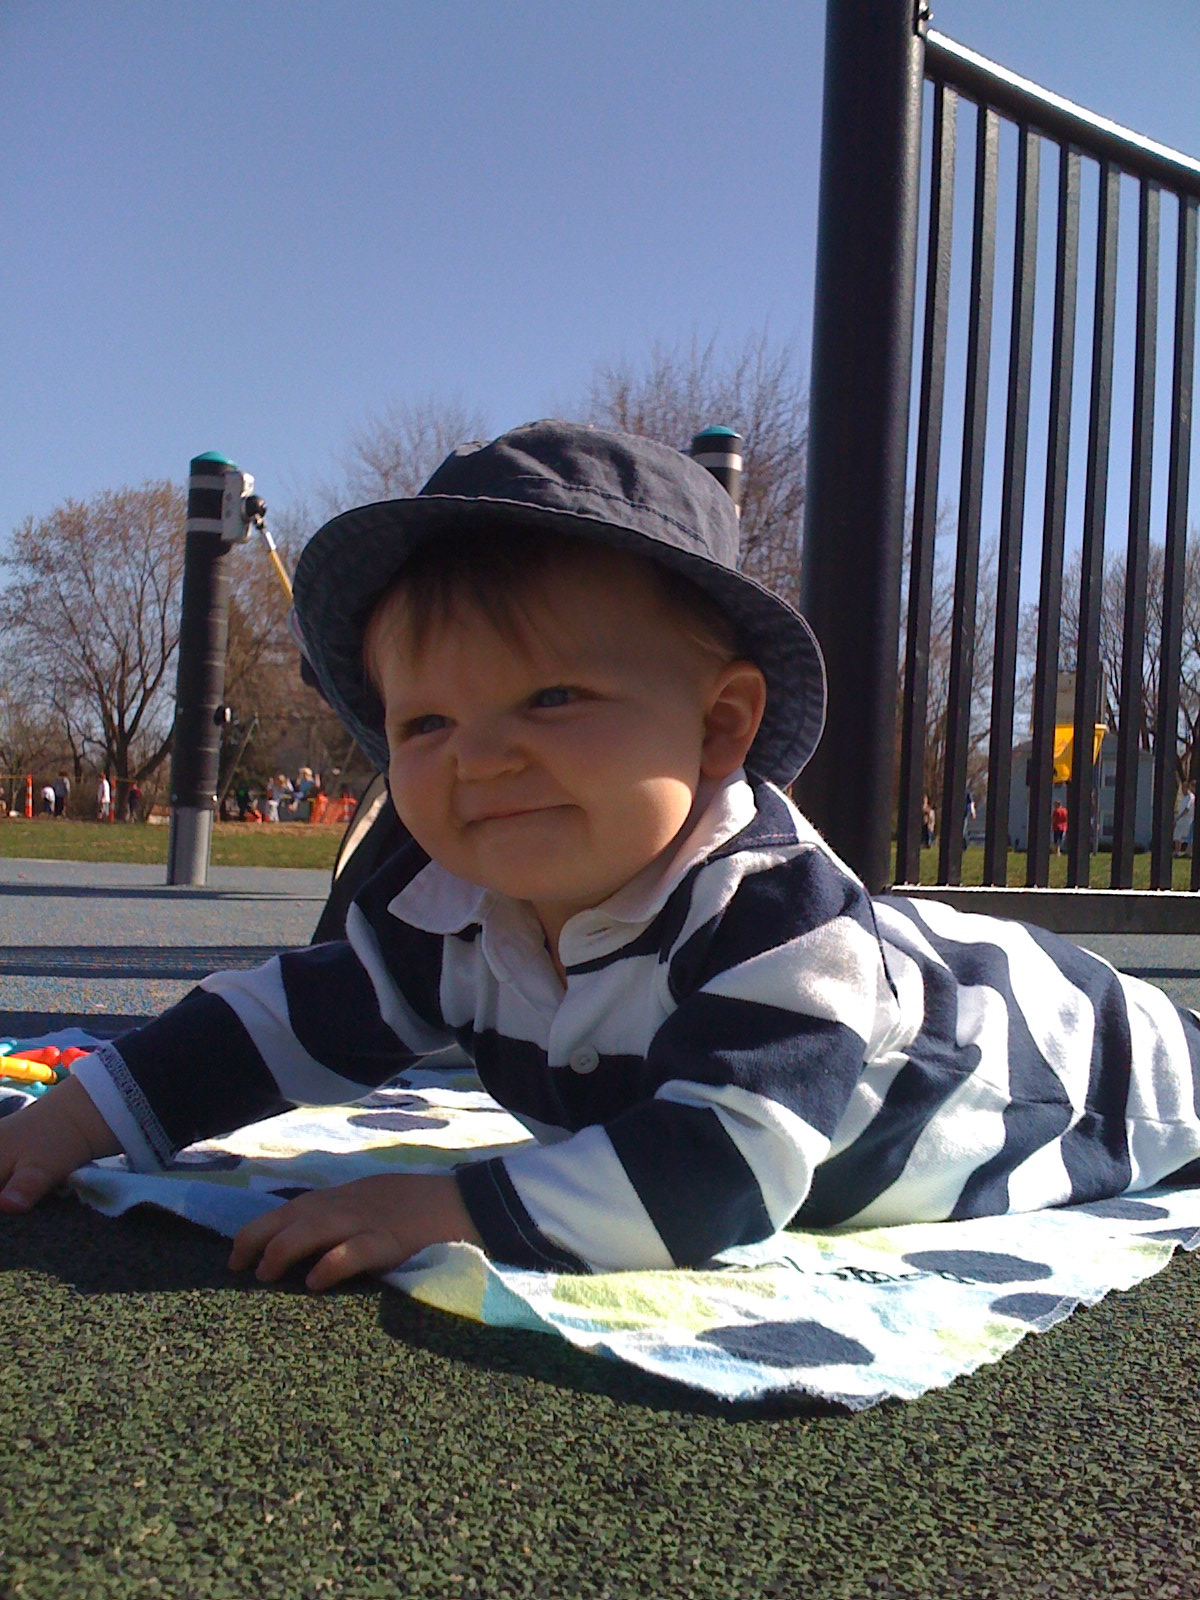 Carter hanging out at the park